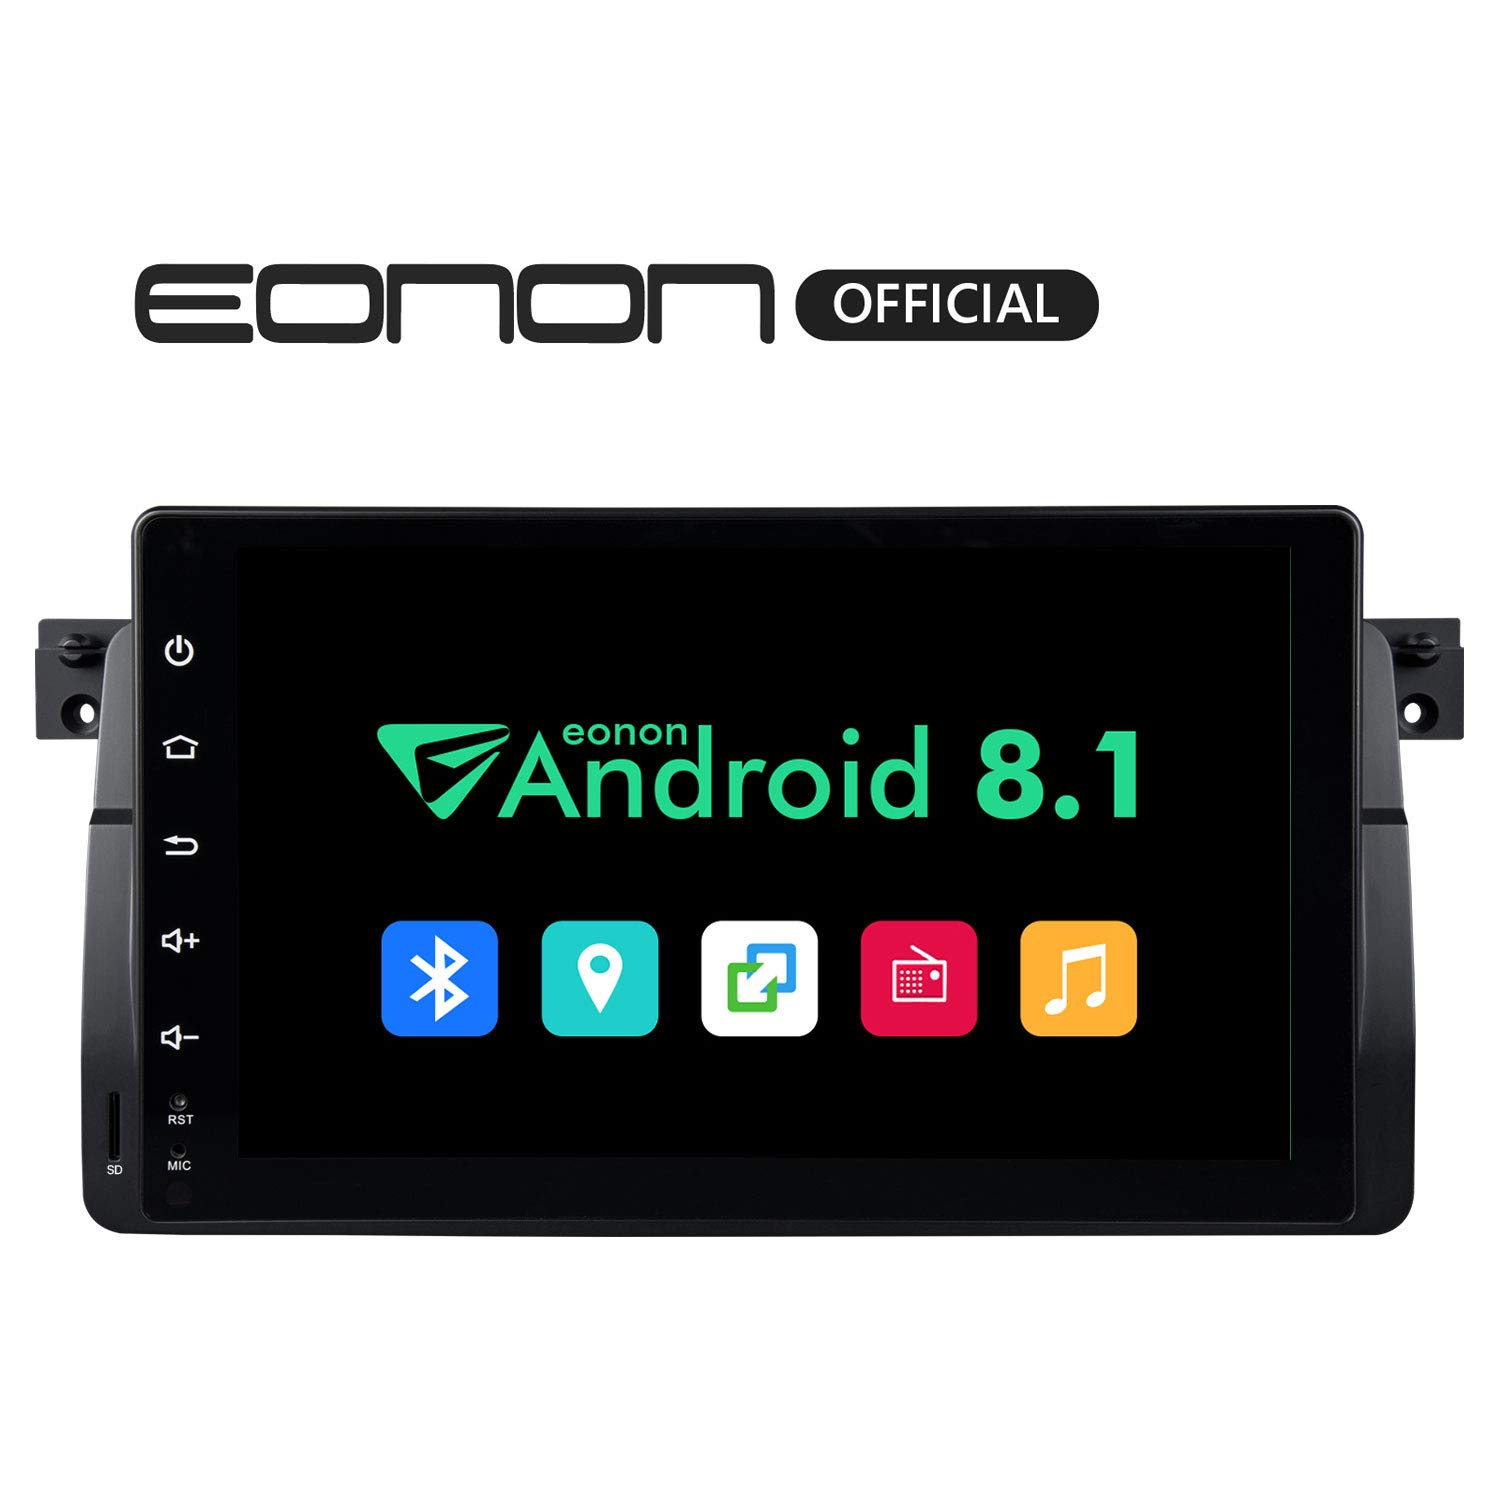 2019 Single Din Car Stereo Radio,Eonon 9 Inch Android 8.1 Car Head Unit in Dash Touch Screen Car GPS Navigation, Car Stereo DVD Player Support WiFi,Fastboot,Backup Camera-GA9150KW